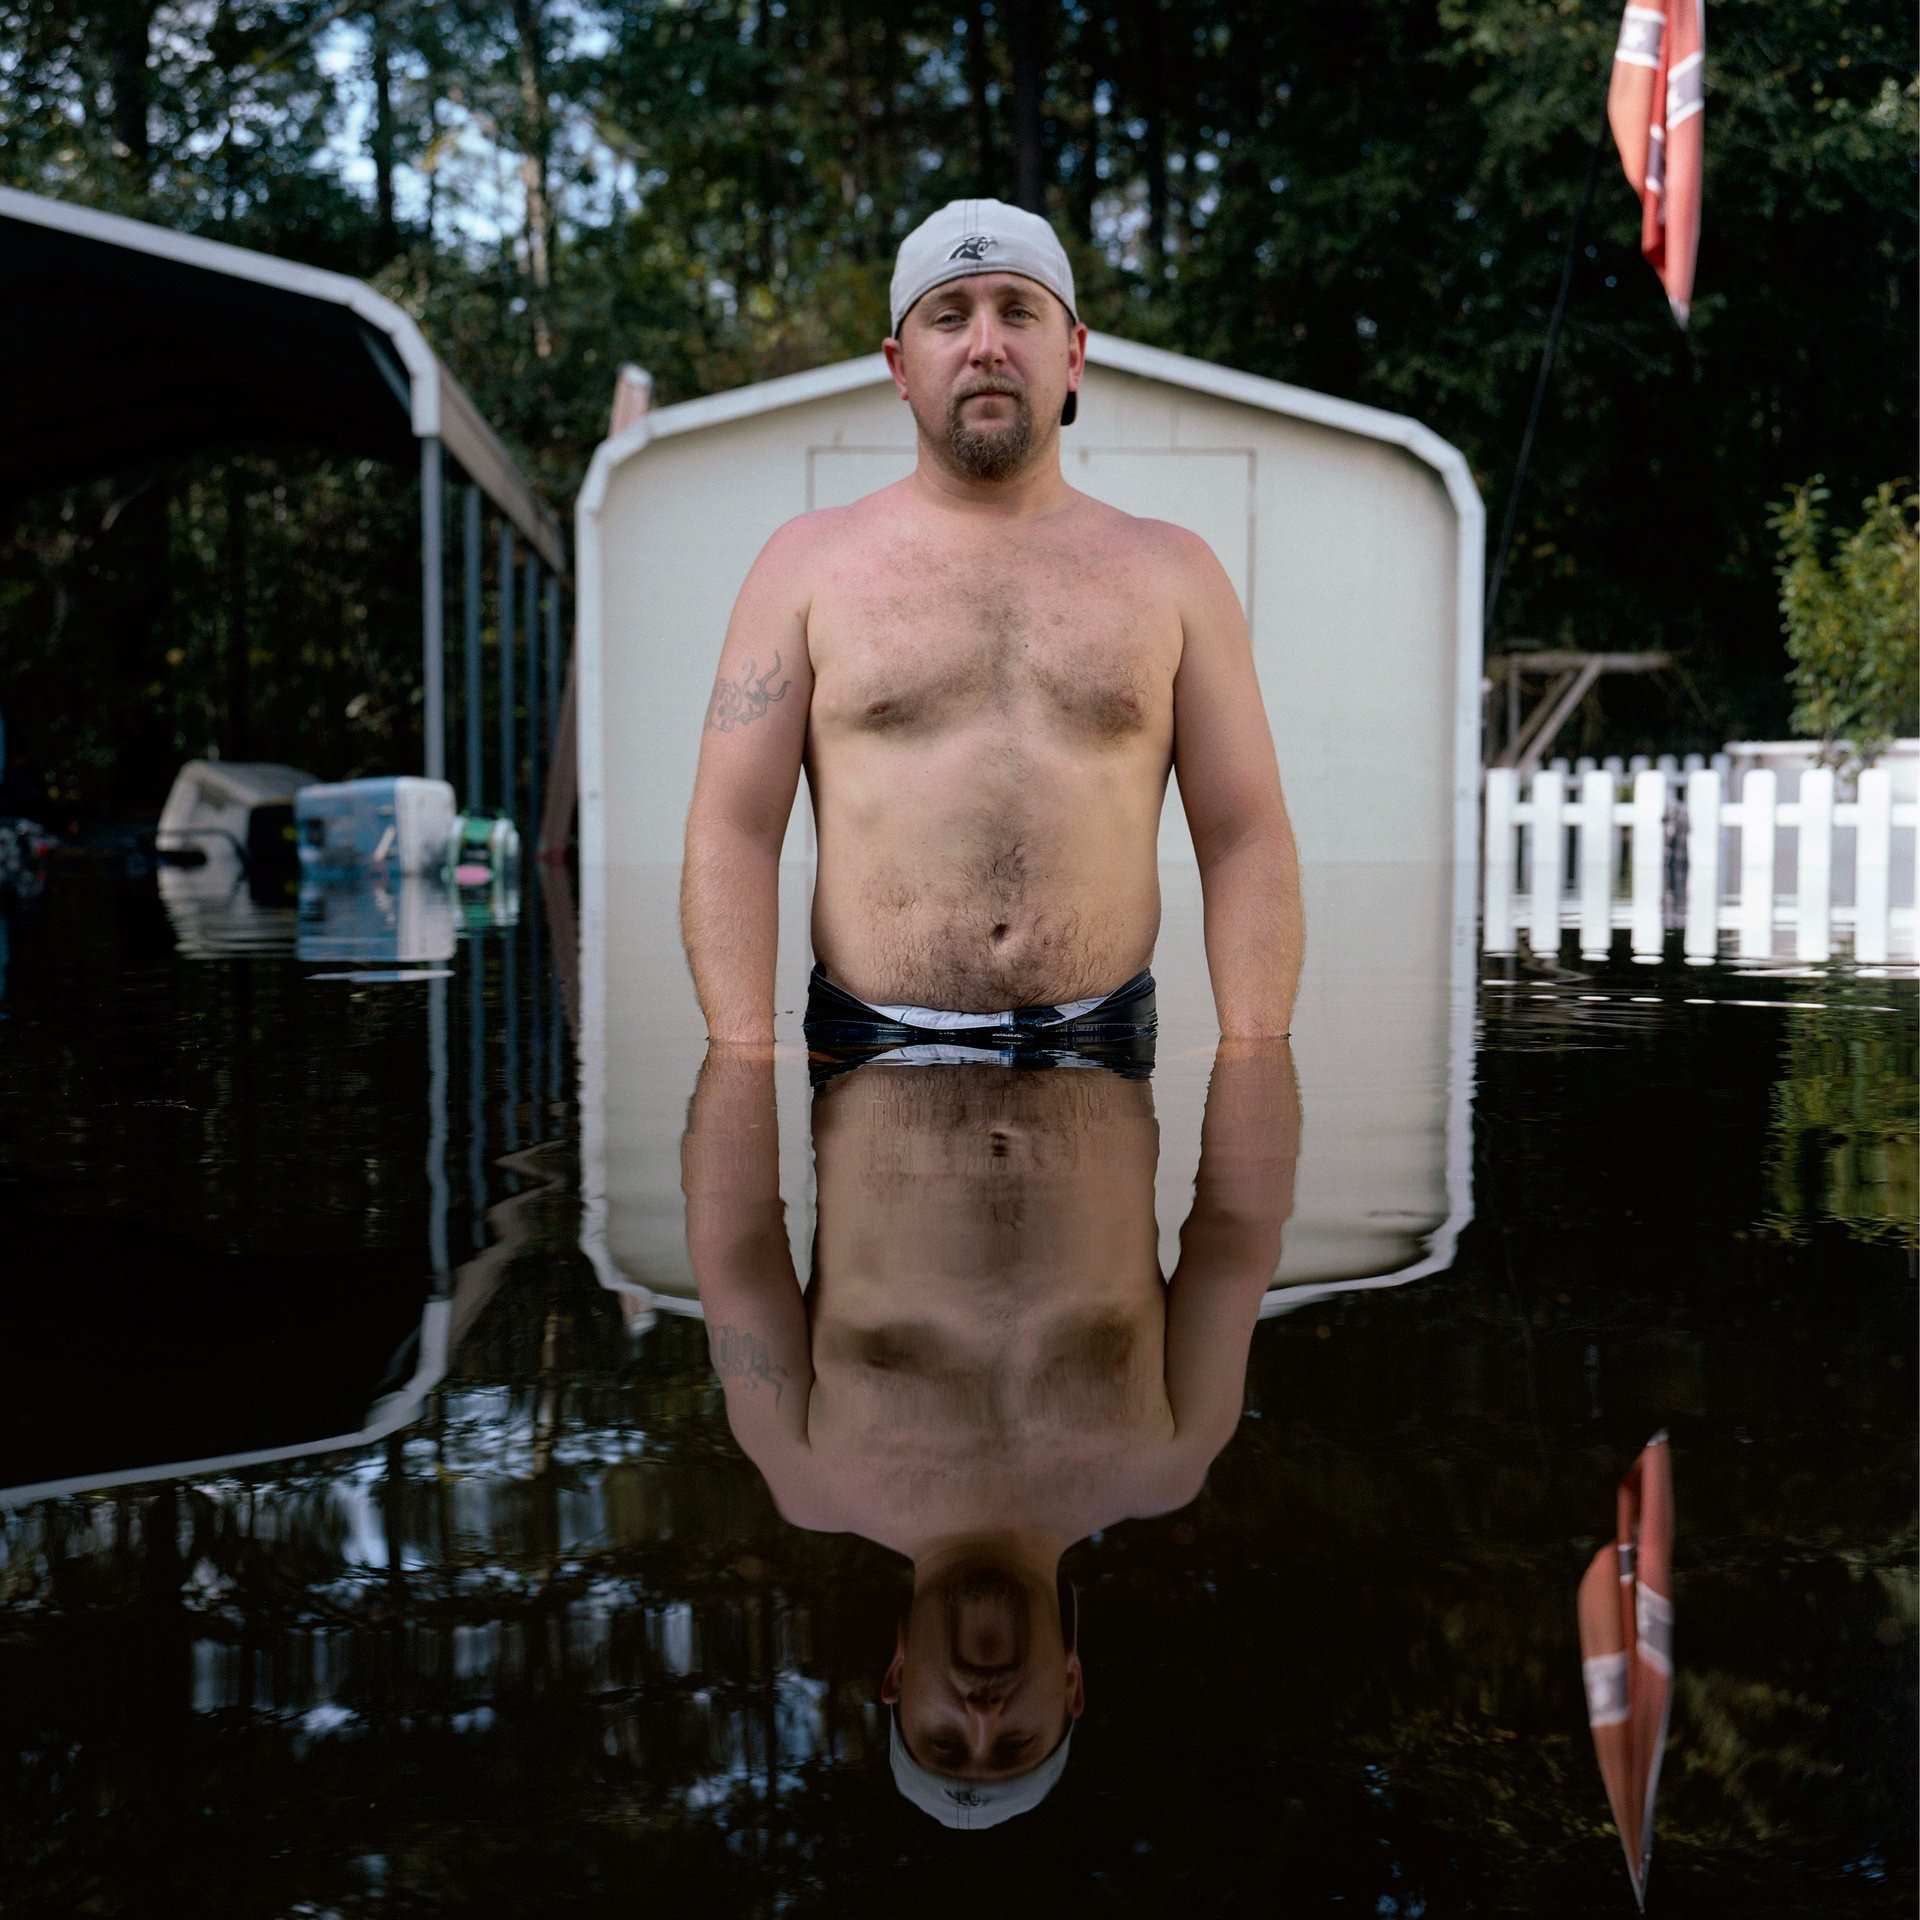 Shocking Portraits of People Living in Flood Zones